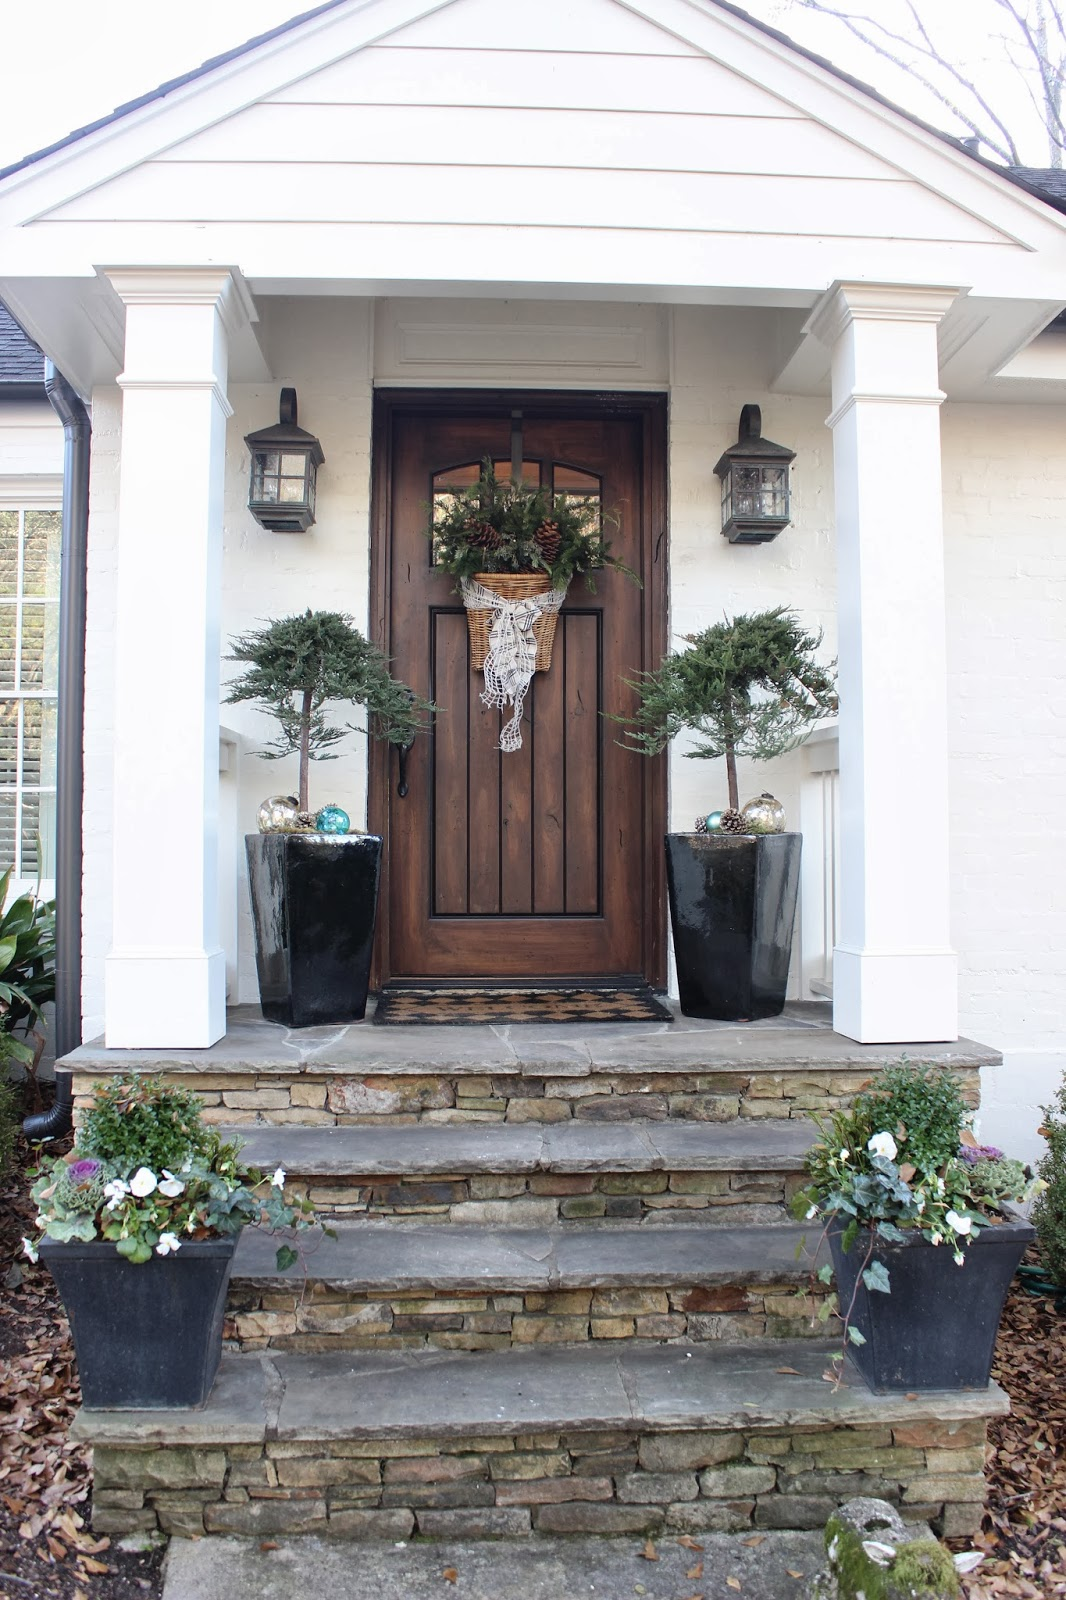 Porch columns coaches and front porches on pinterest for Entry door designs for home